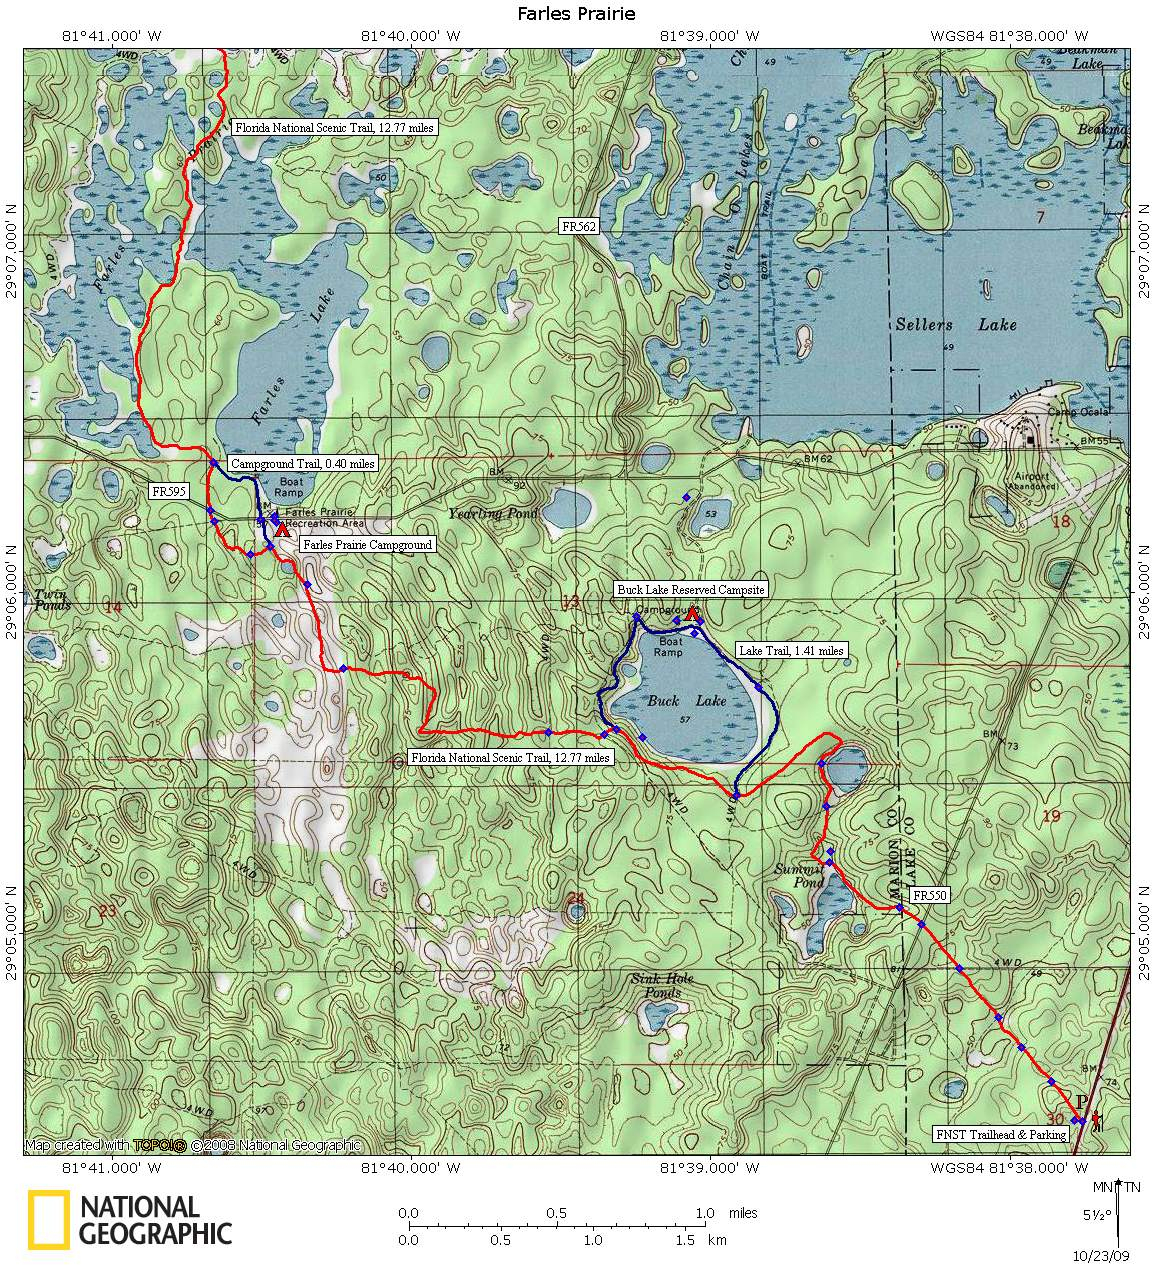 Ocala National Forest - Farles Prairie - National Forests In Florida Map